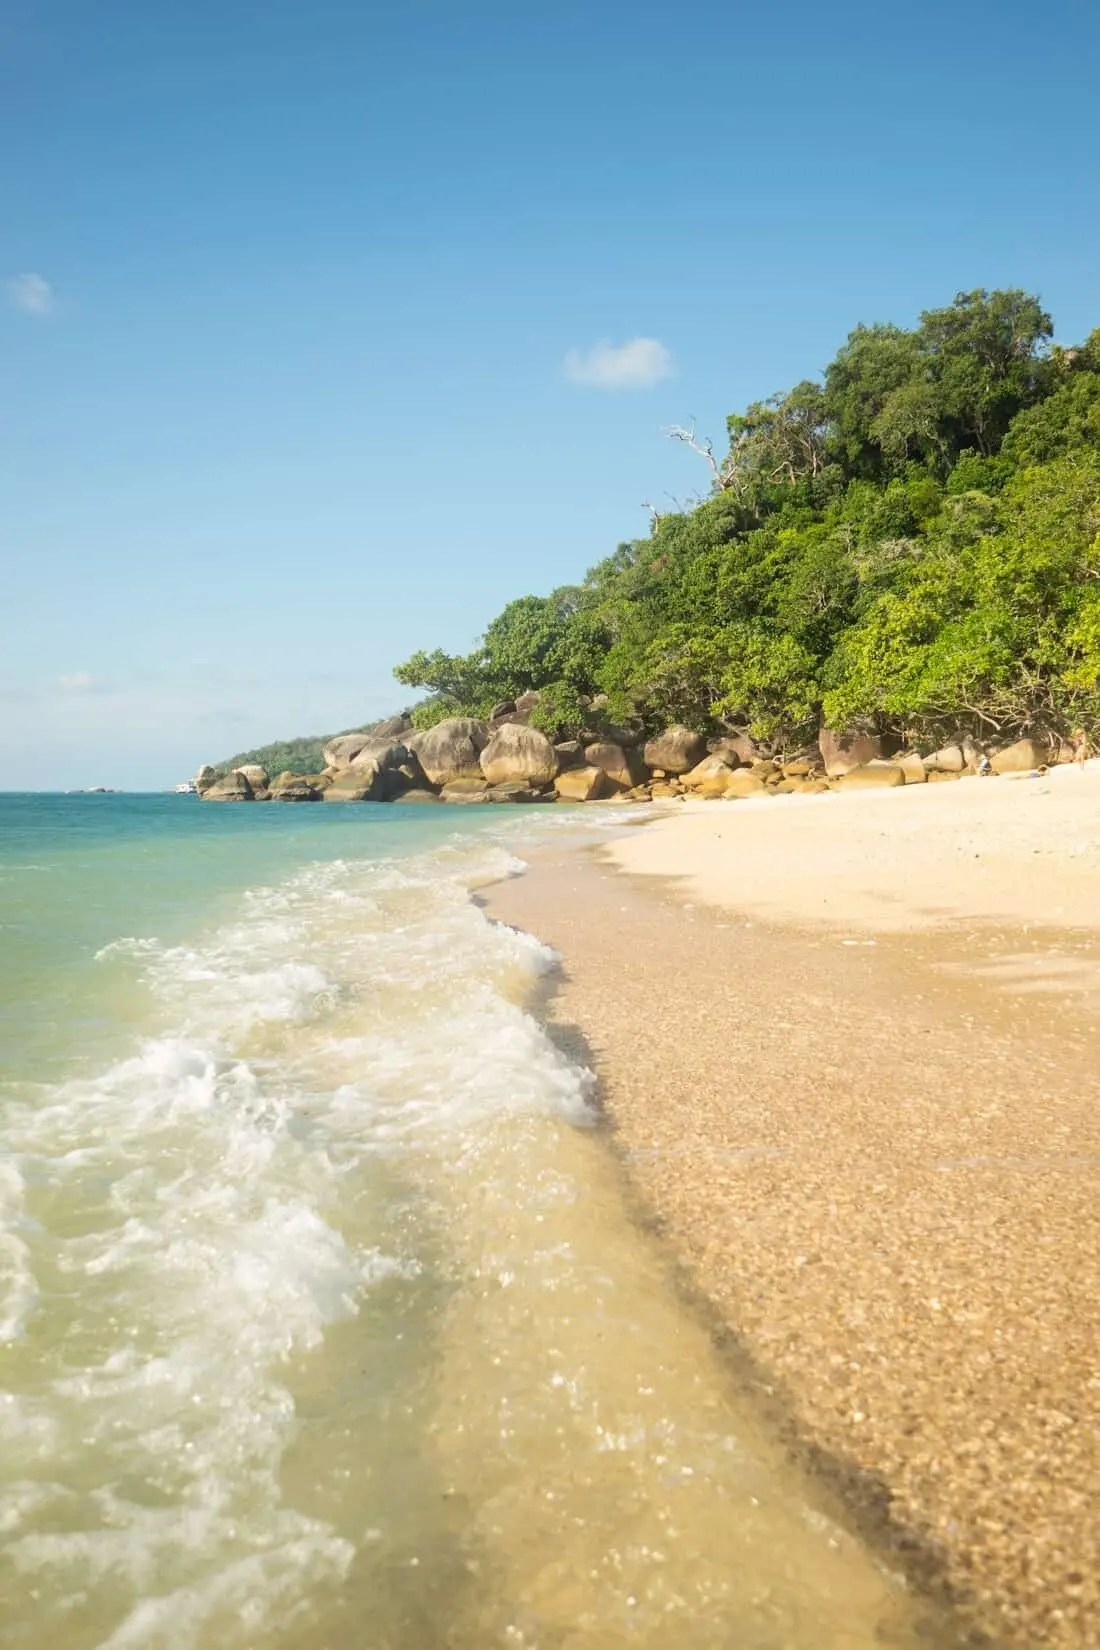 Nudey Beach, Fitzroy Island near Cairns, Queensland, Australia